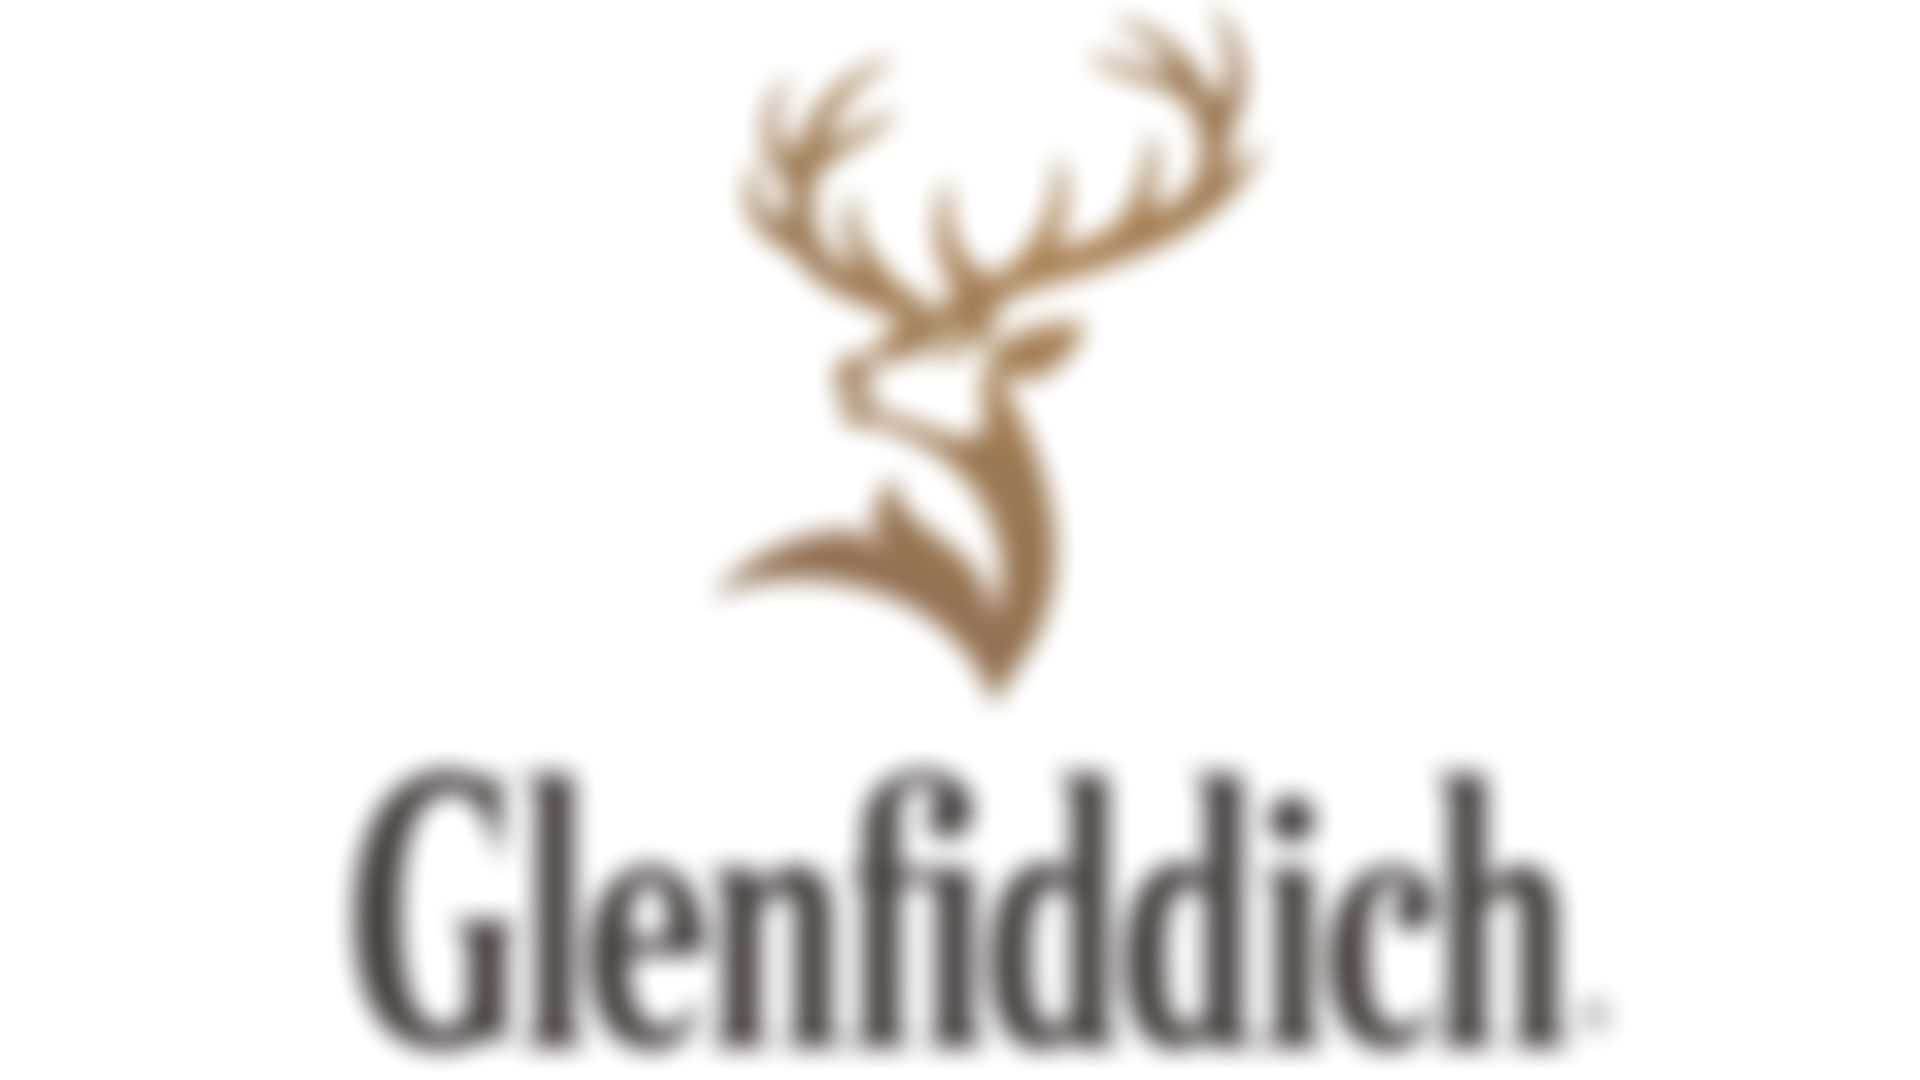 GlenfiddichIrrepressible